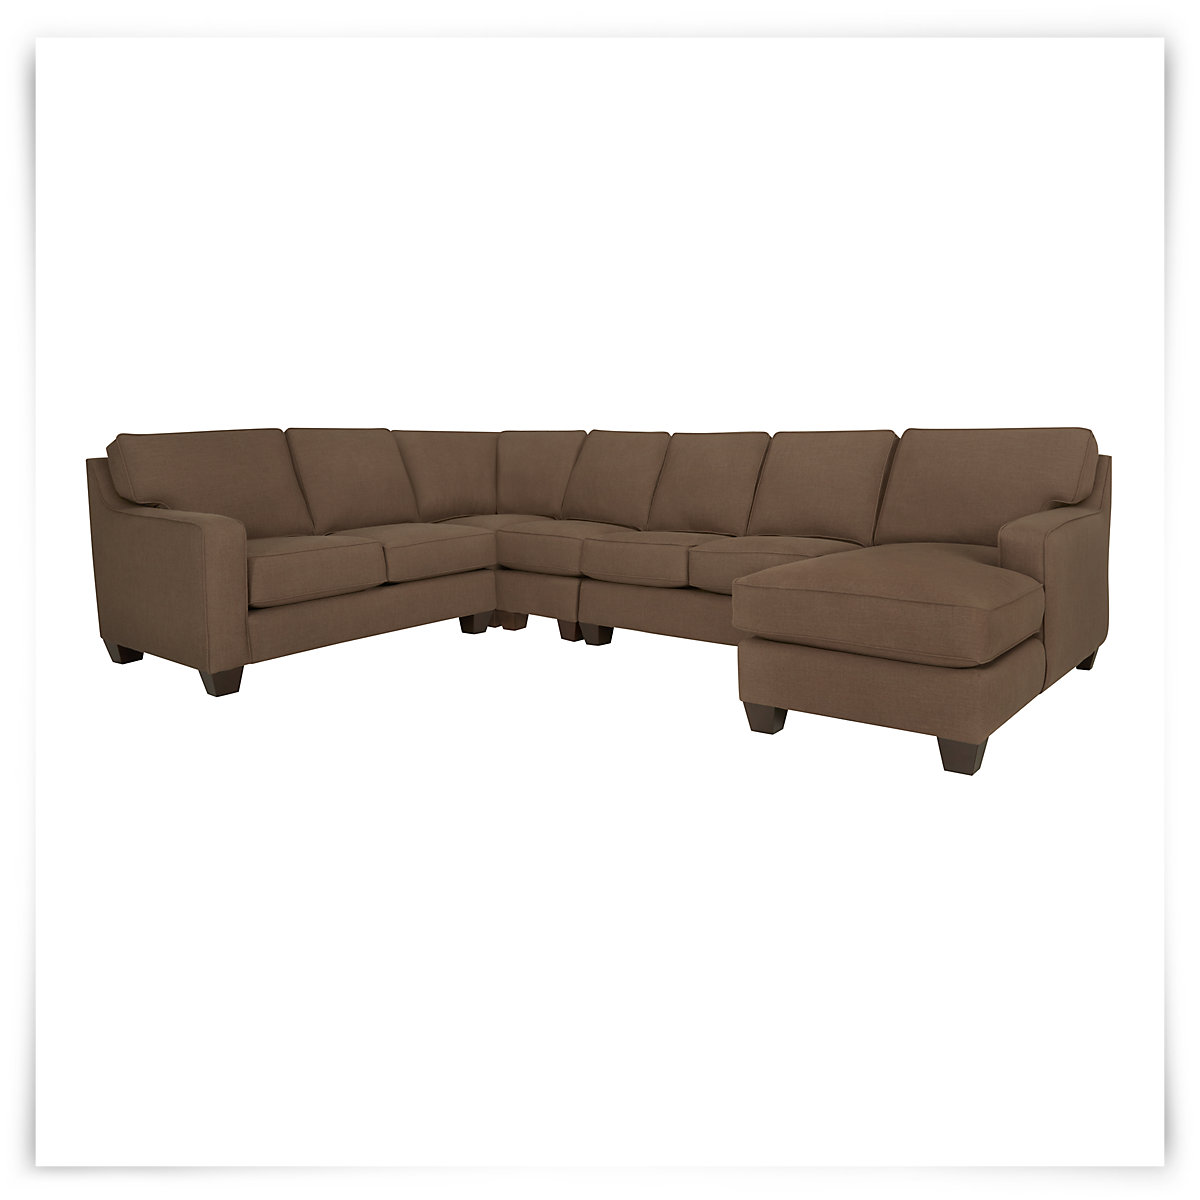 City furniture york dk brown fabric large right chaise for Chaise york